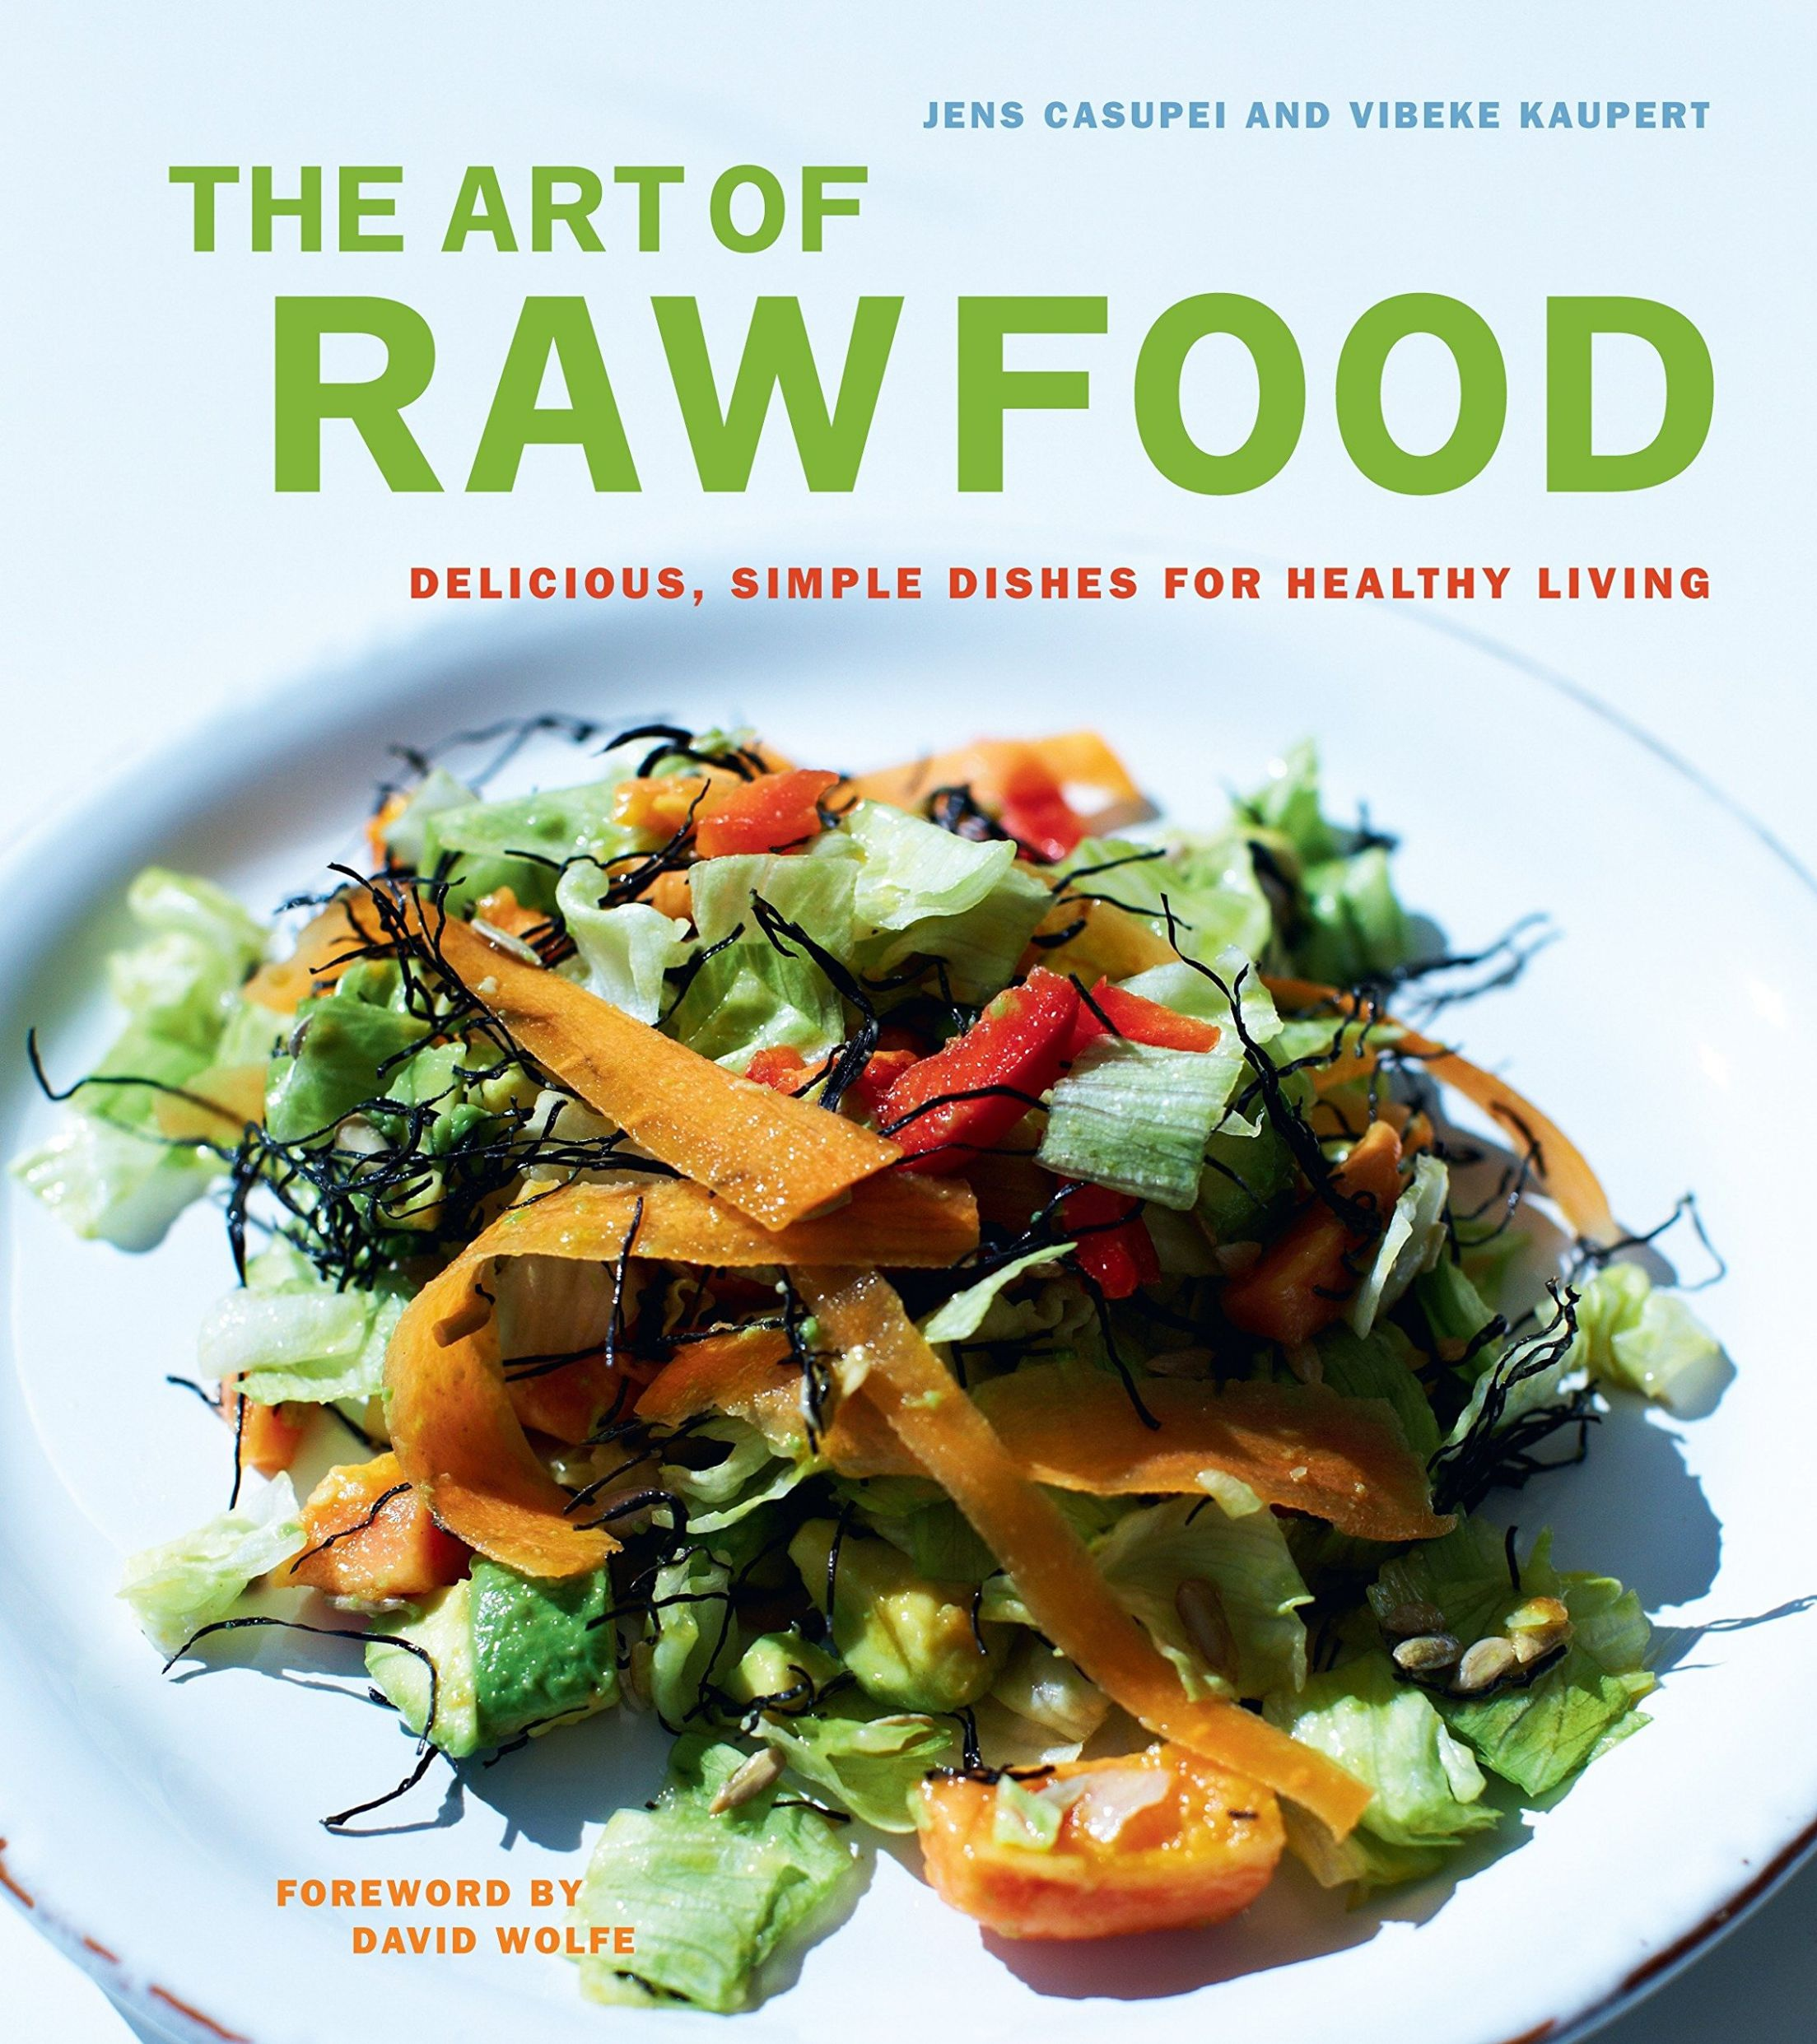 The Art of Raw Food: Delicious, Simple Dishes for Healthy Living ..